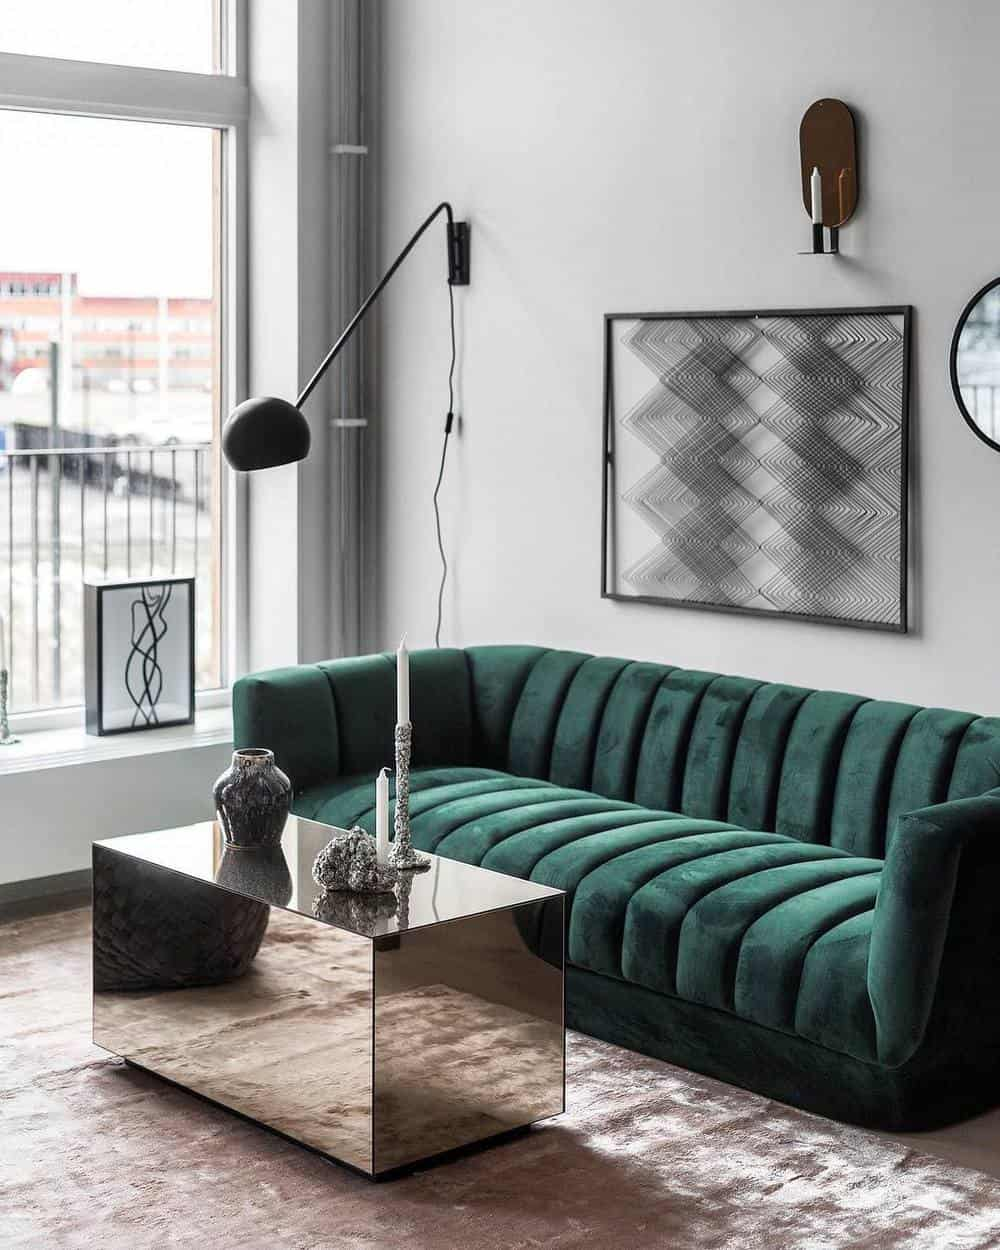 Different Types of Interior Design Styles Explained - Scandinavian